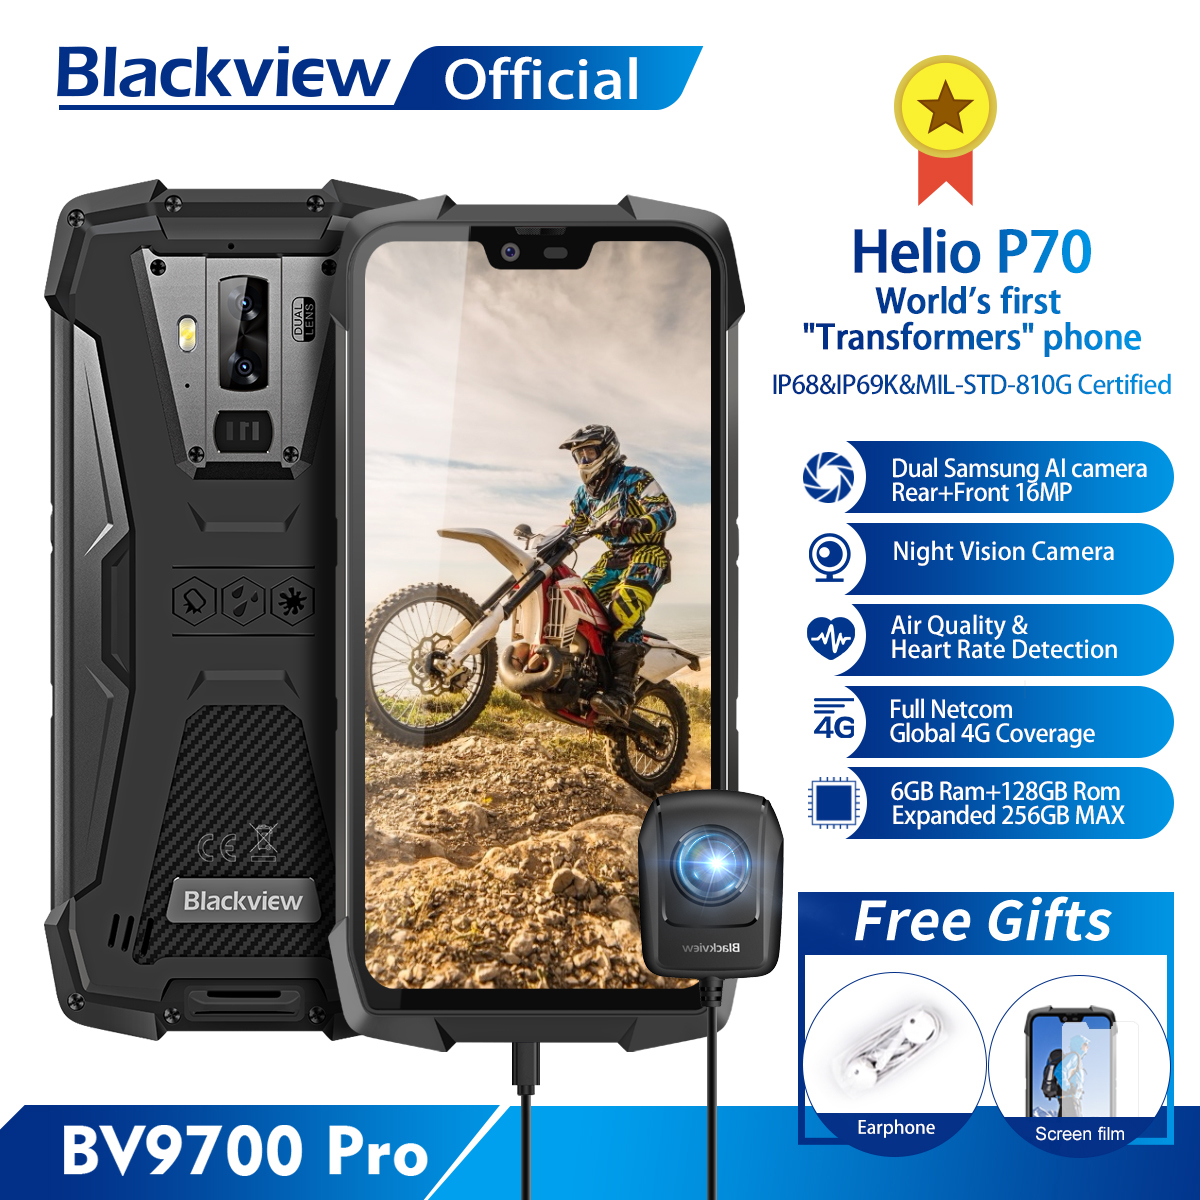 Blackview BV9700 Pro IP68 Rugged Mobile Phone Helio P70 Octa Core 6GB+128GB Android 9.0 16MP+8MP Night Vision Camera Smartphone plywood